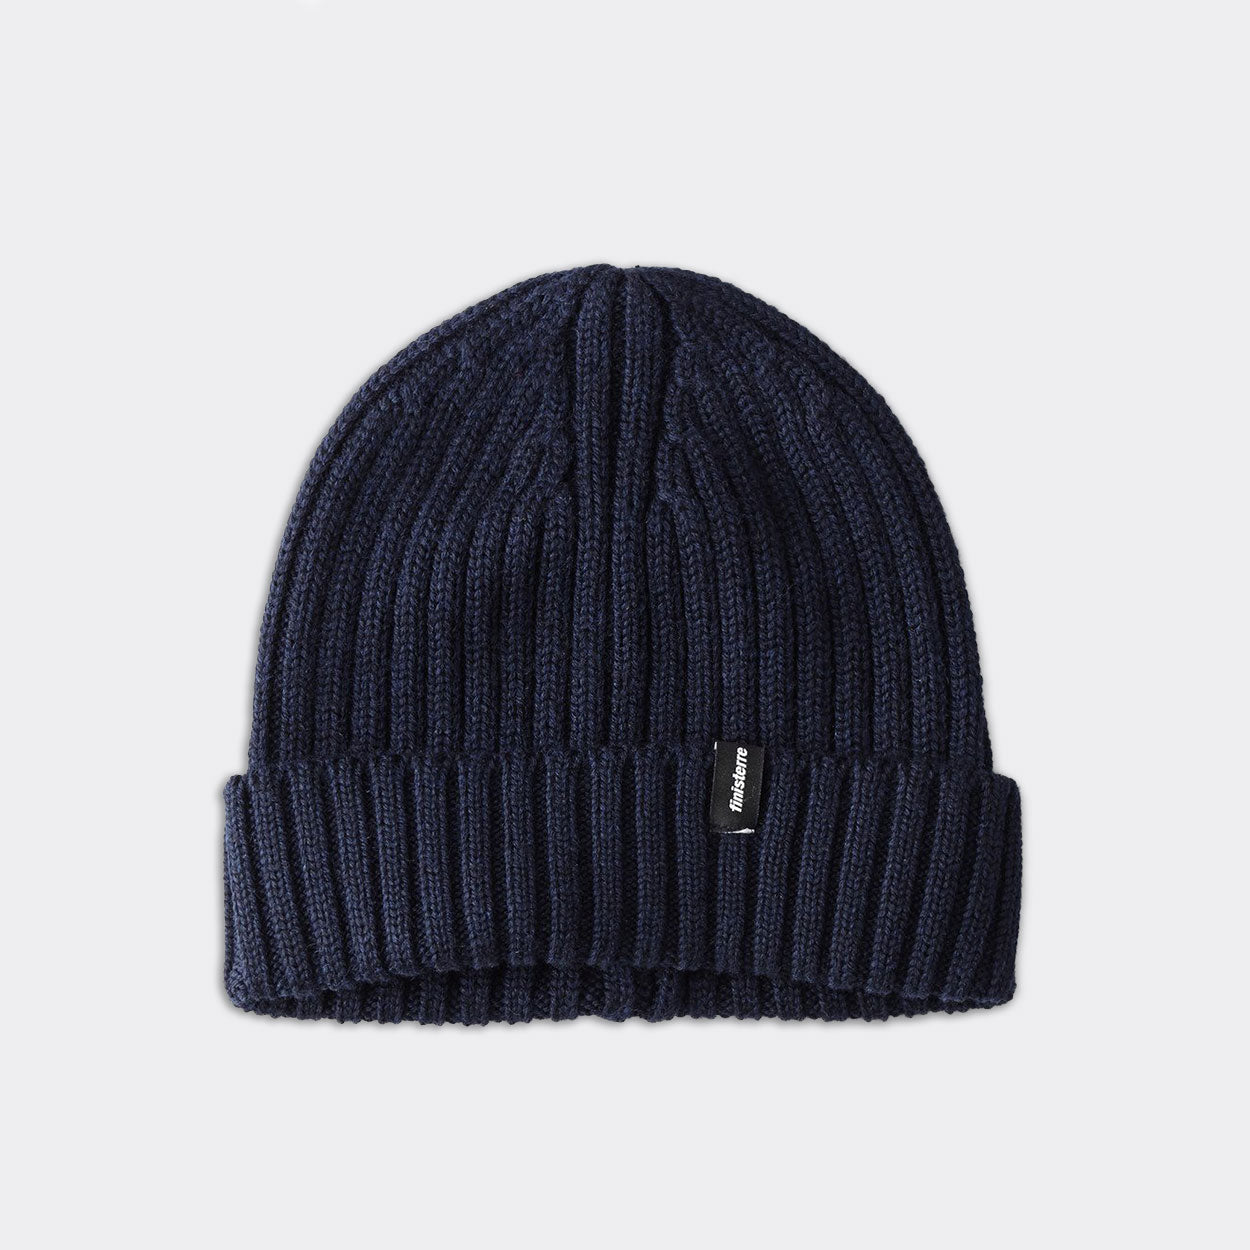 Finisterre Fisherman Beanie - Navy Hat - CARTOCON